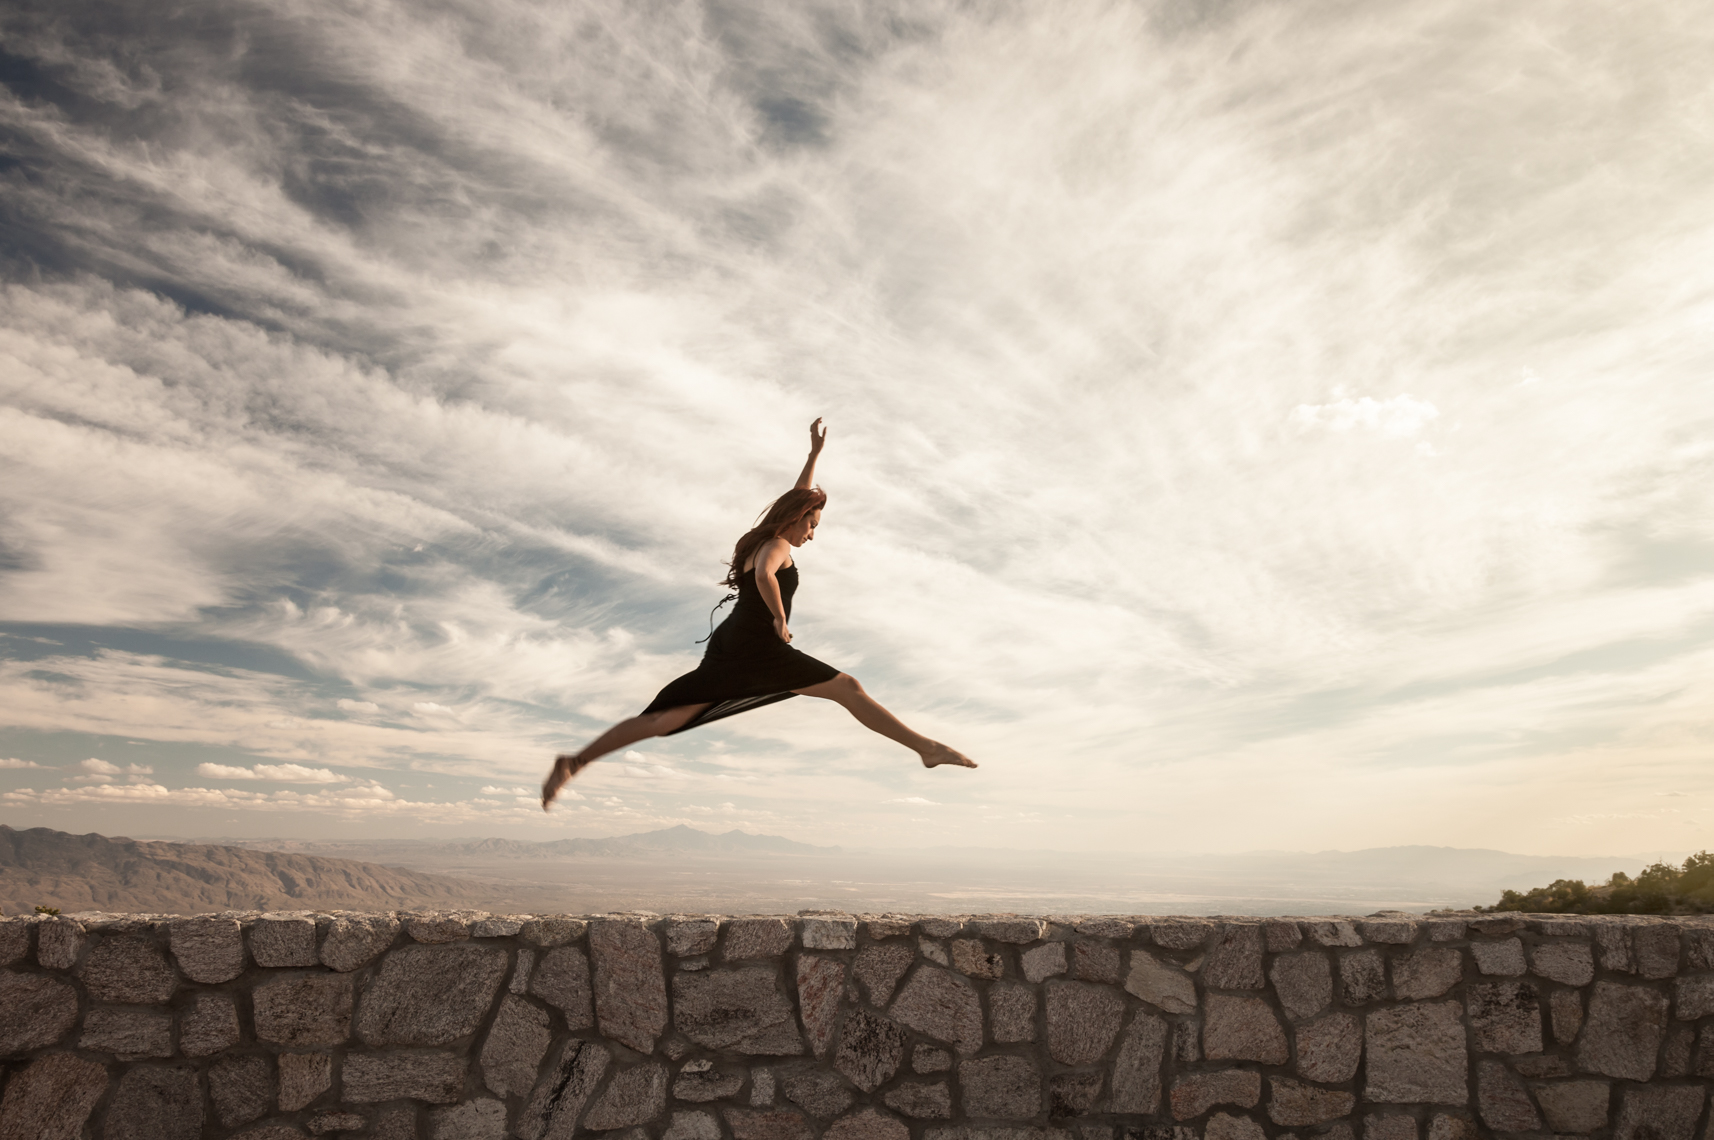 Beautiful, healthy, strong, Hispanic woman leaping jumping over stone wall with dramatic sky background